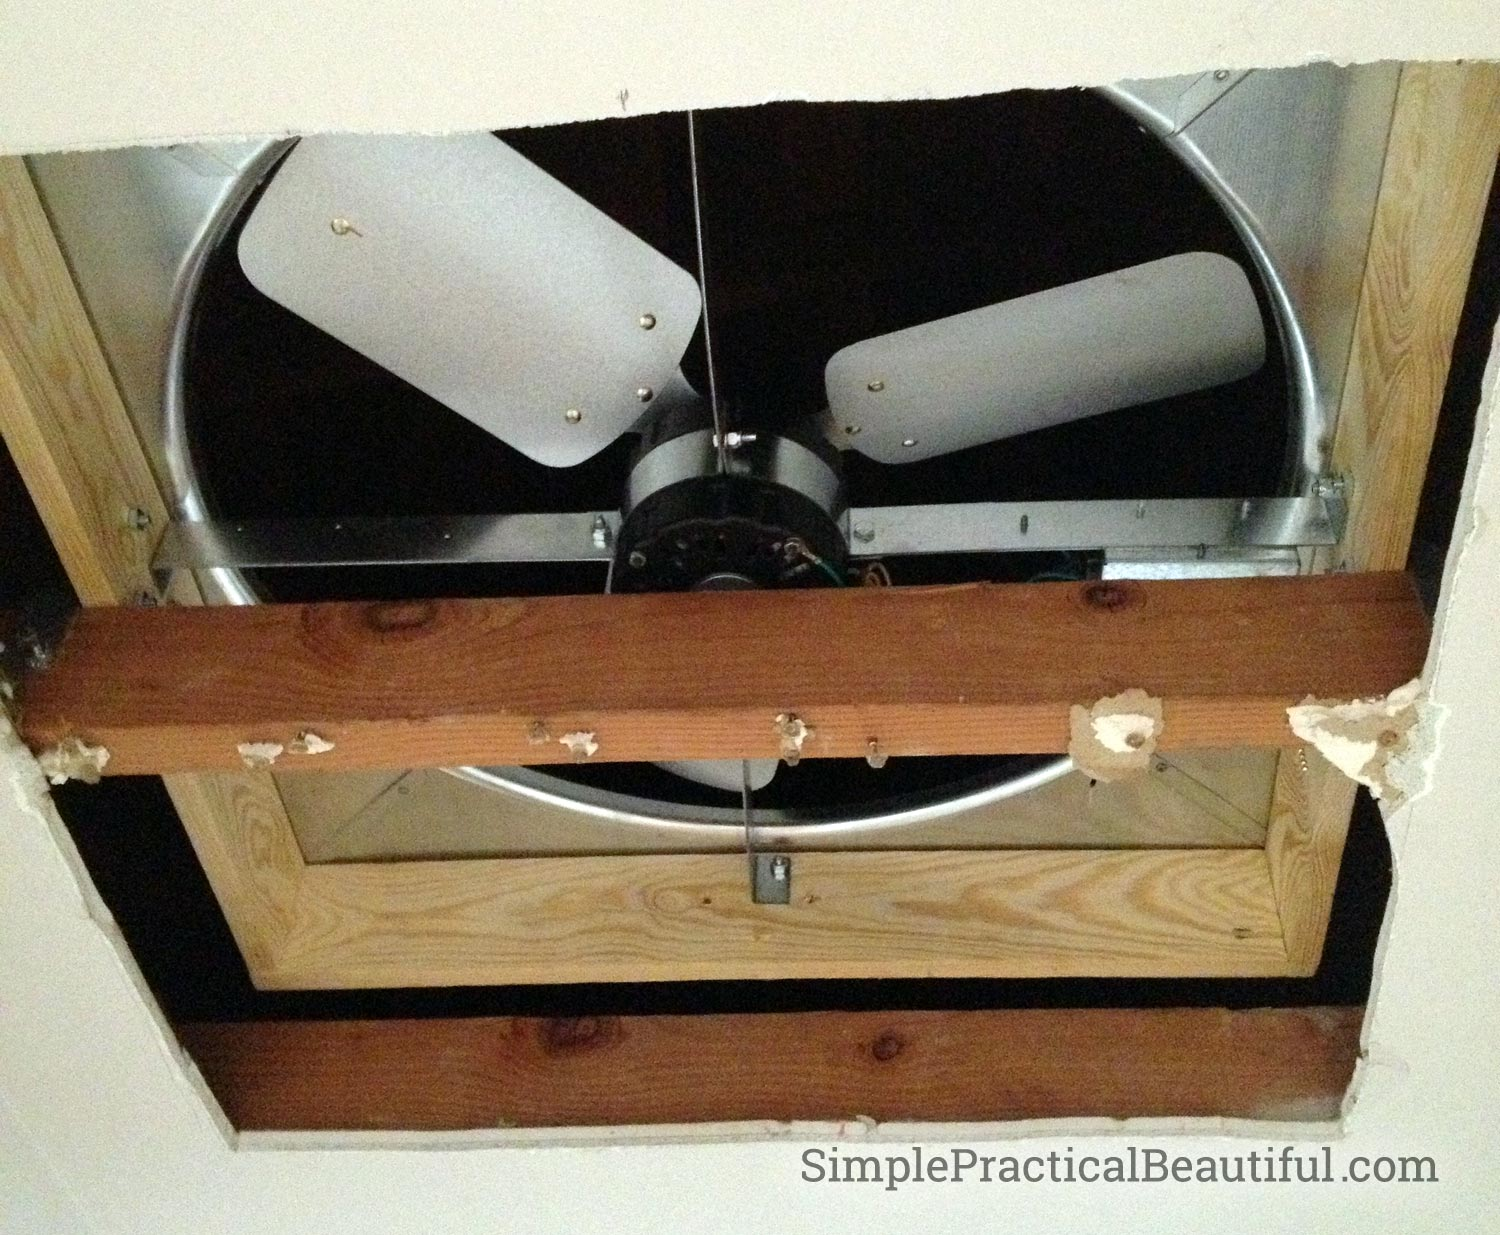 DIY Whole House Fan | SimplePracticalBeautiful.com